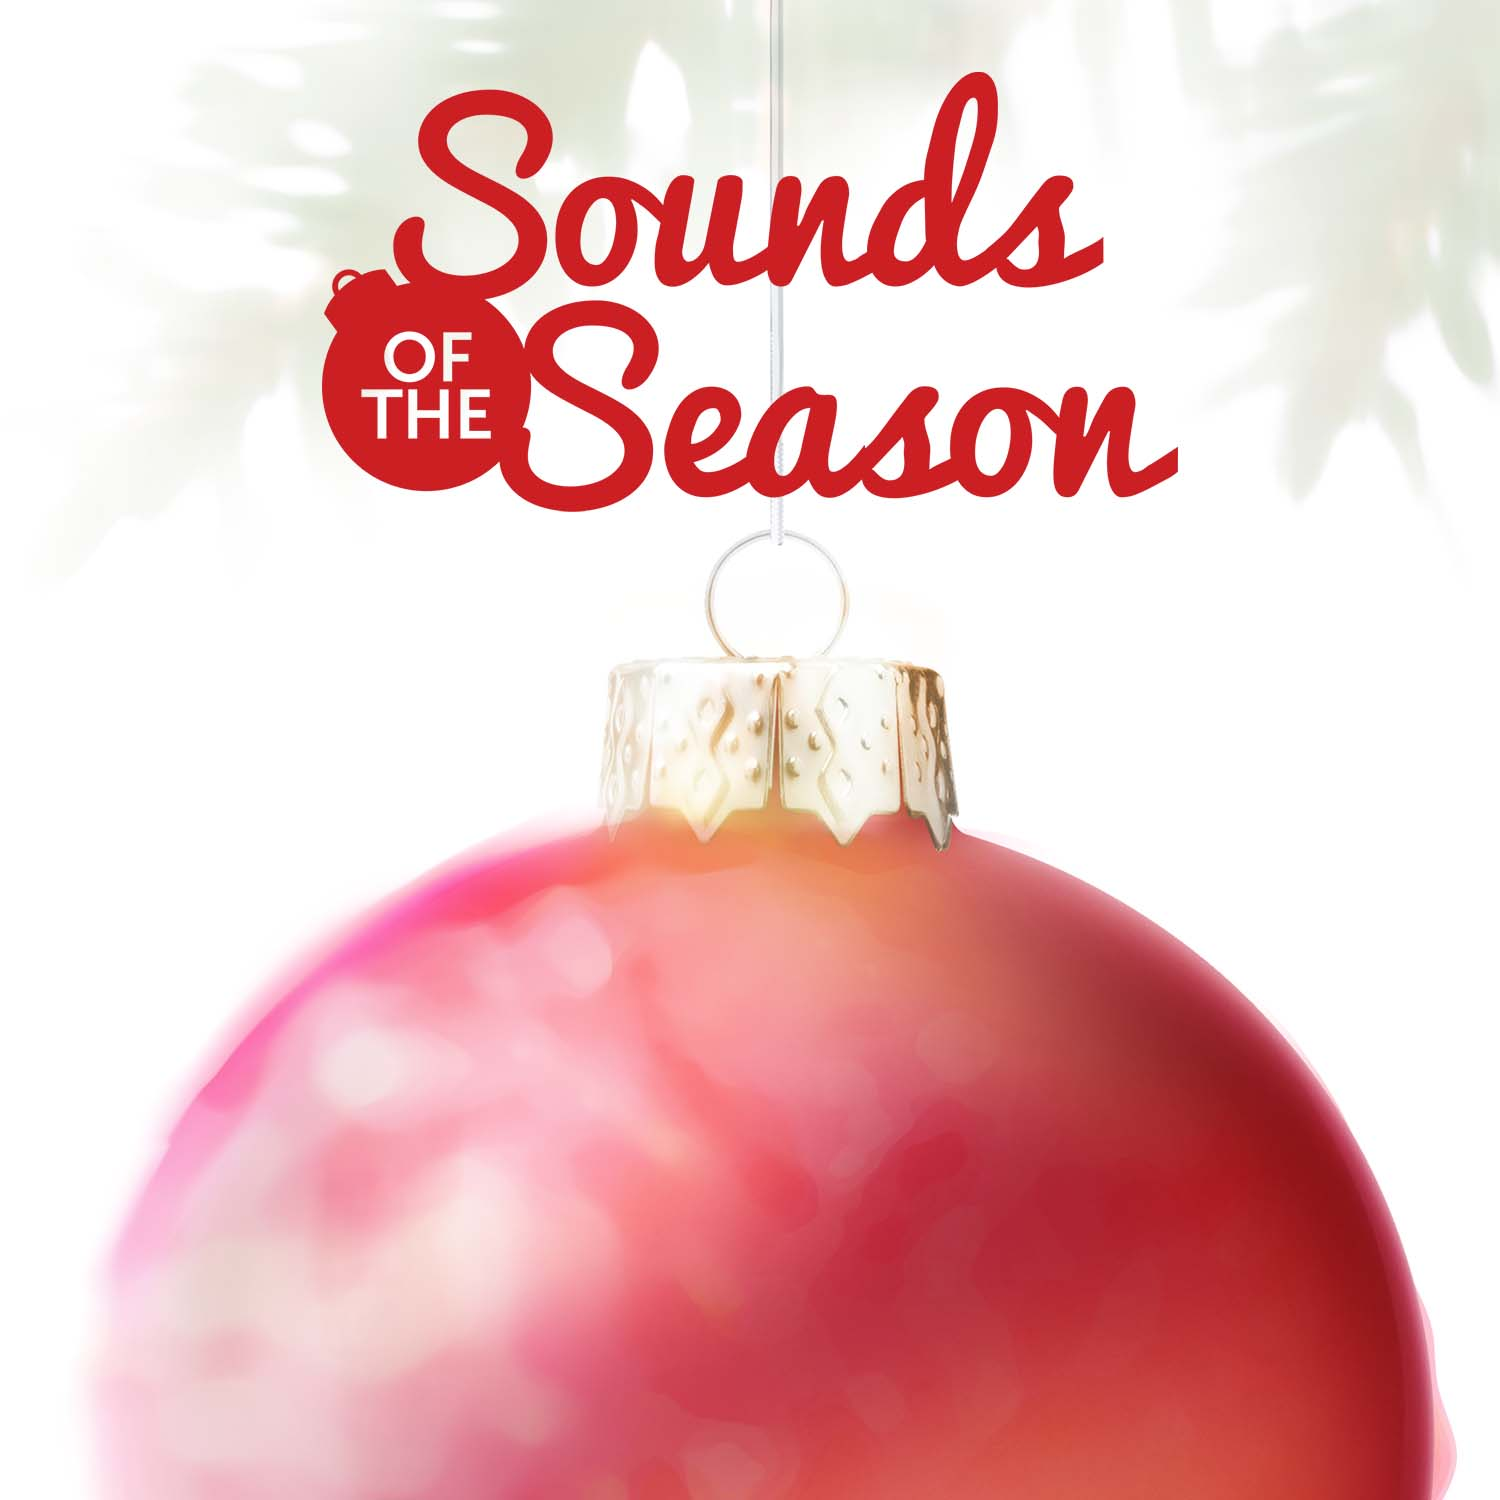 Sounds of the Season | Friday, December 9, 2016 | 7:30 P.M. | Brock Recital Hall, Samford University